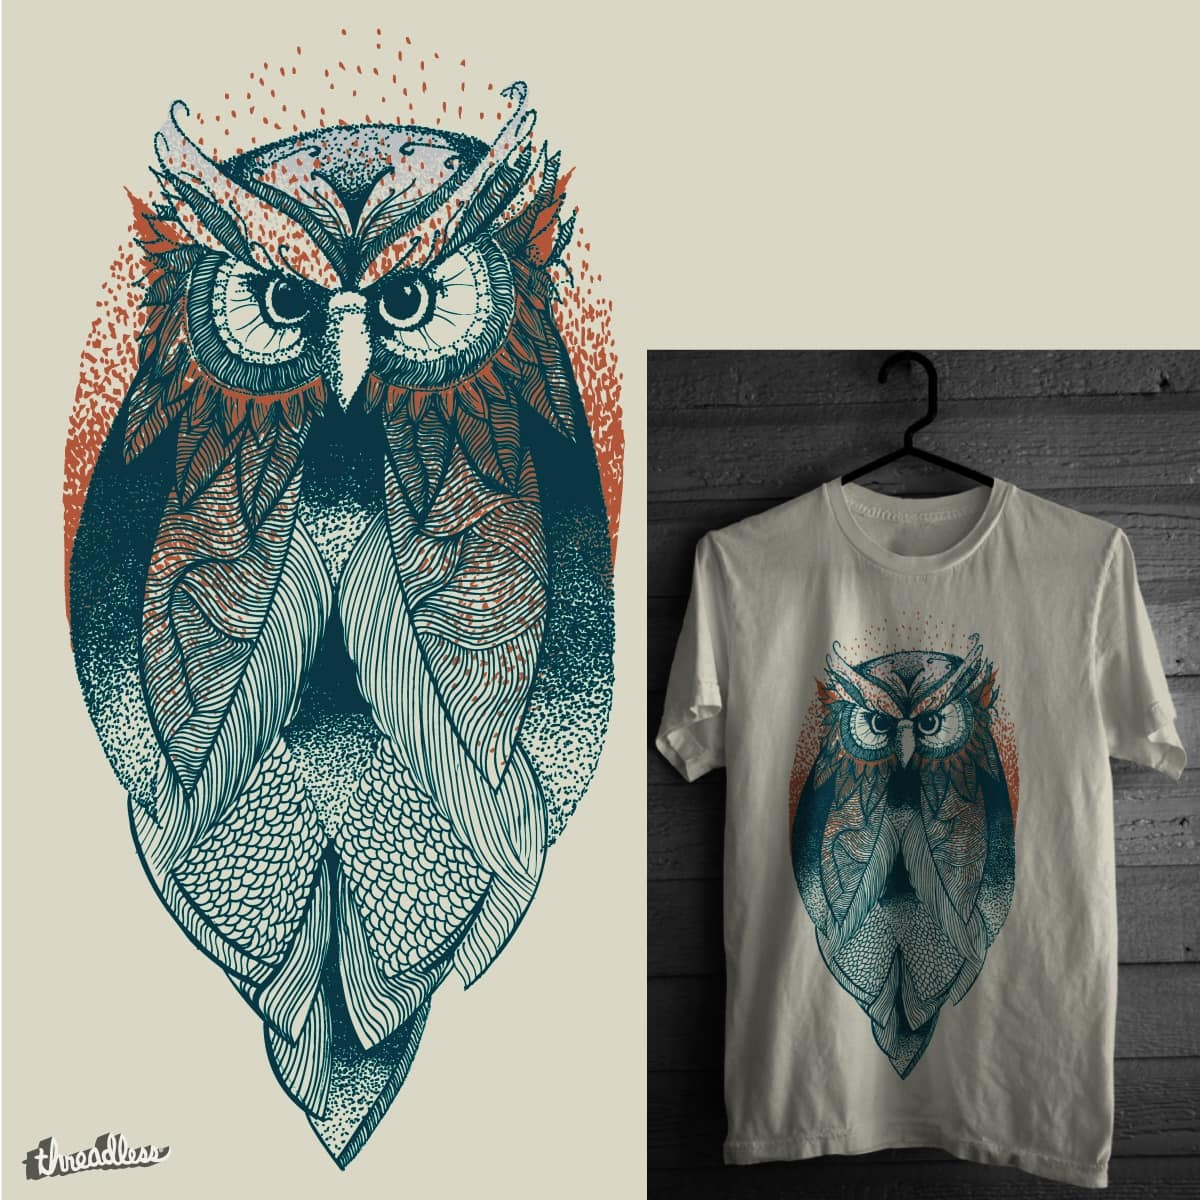 Shadows by rskinner1122 on Threadless